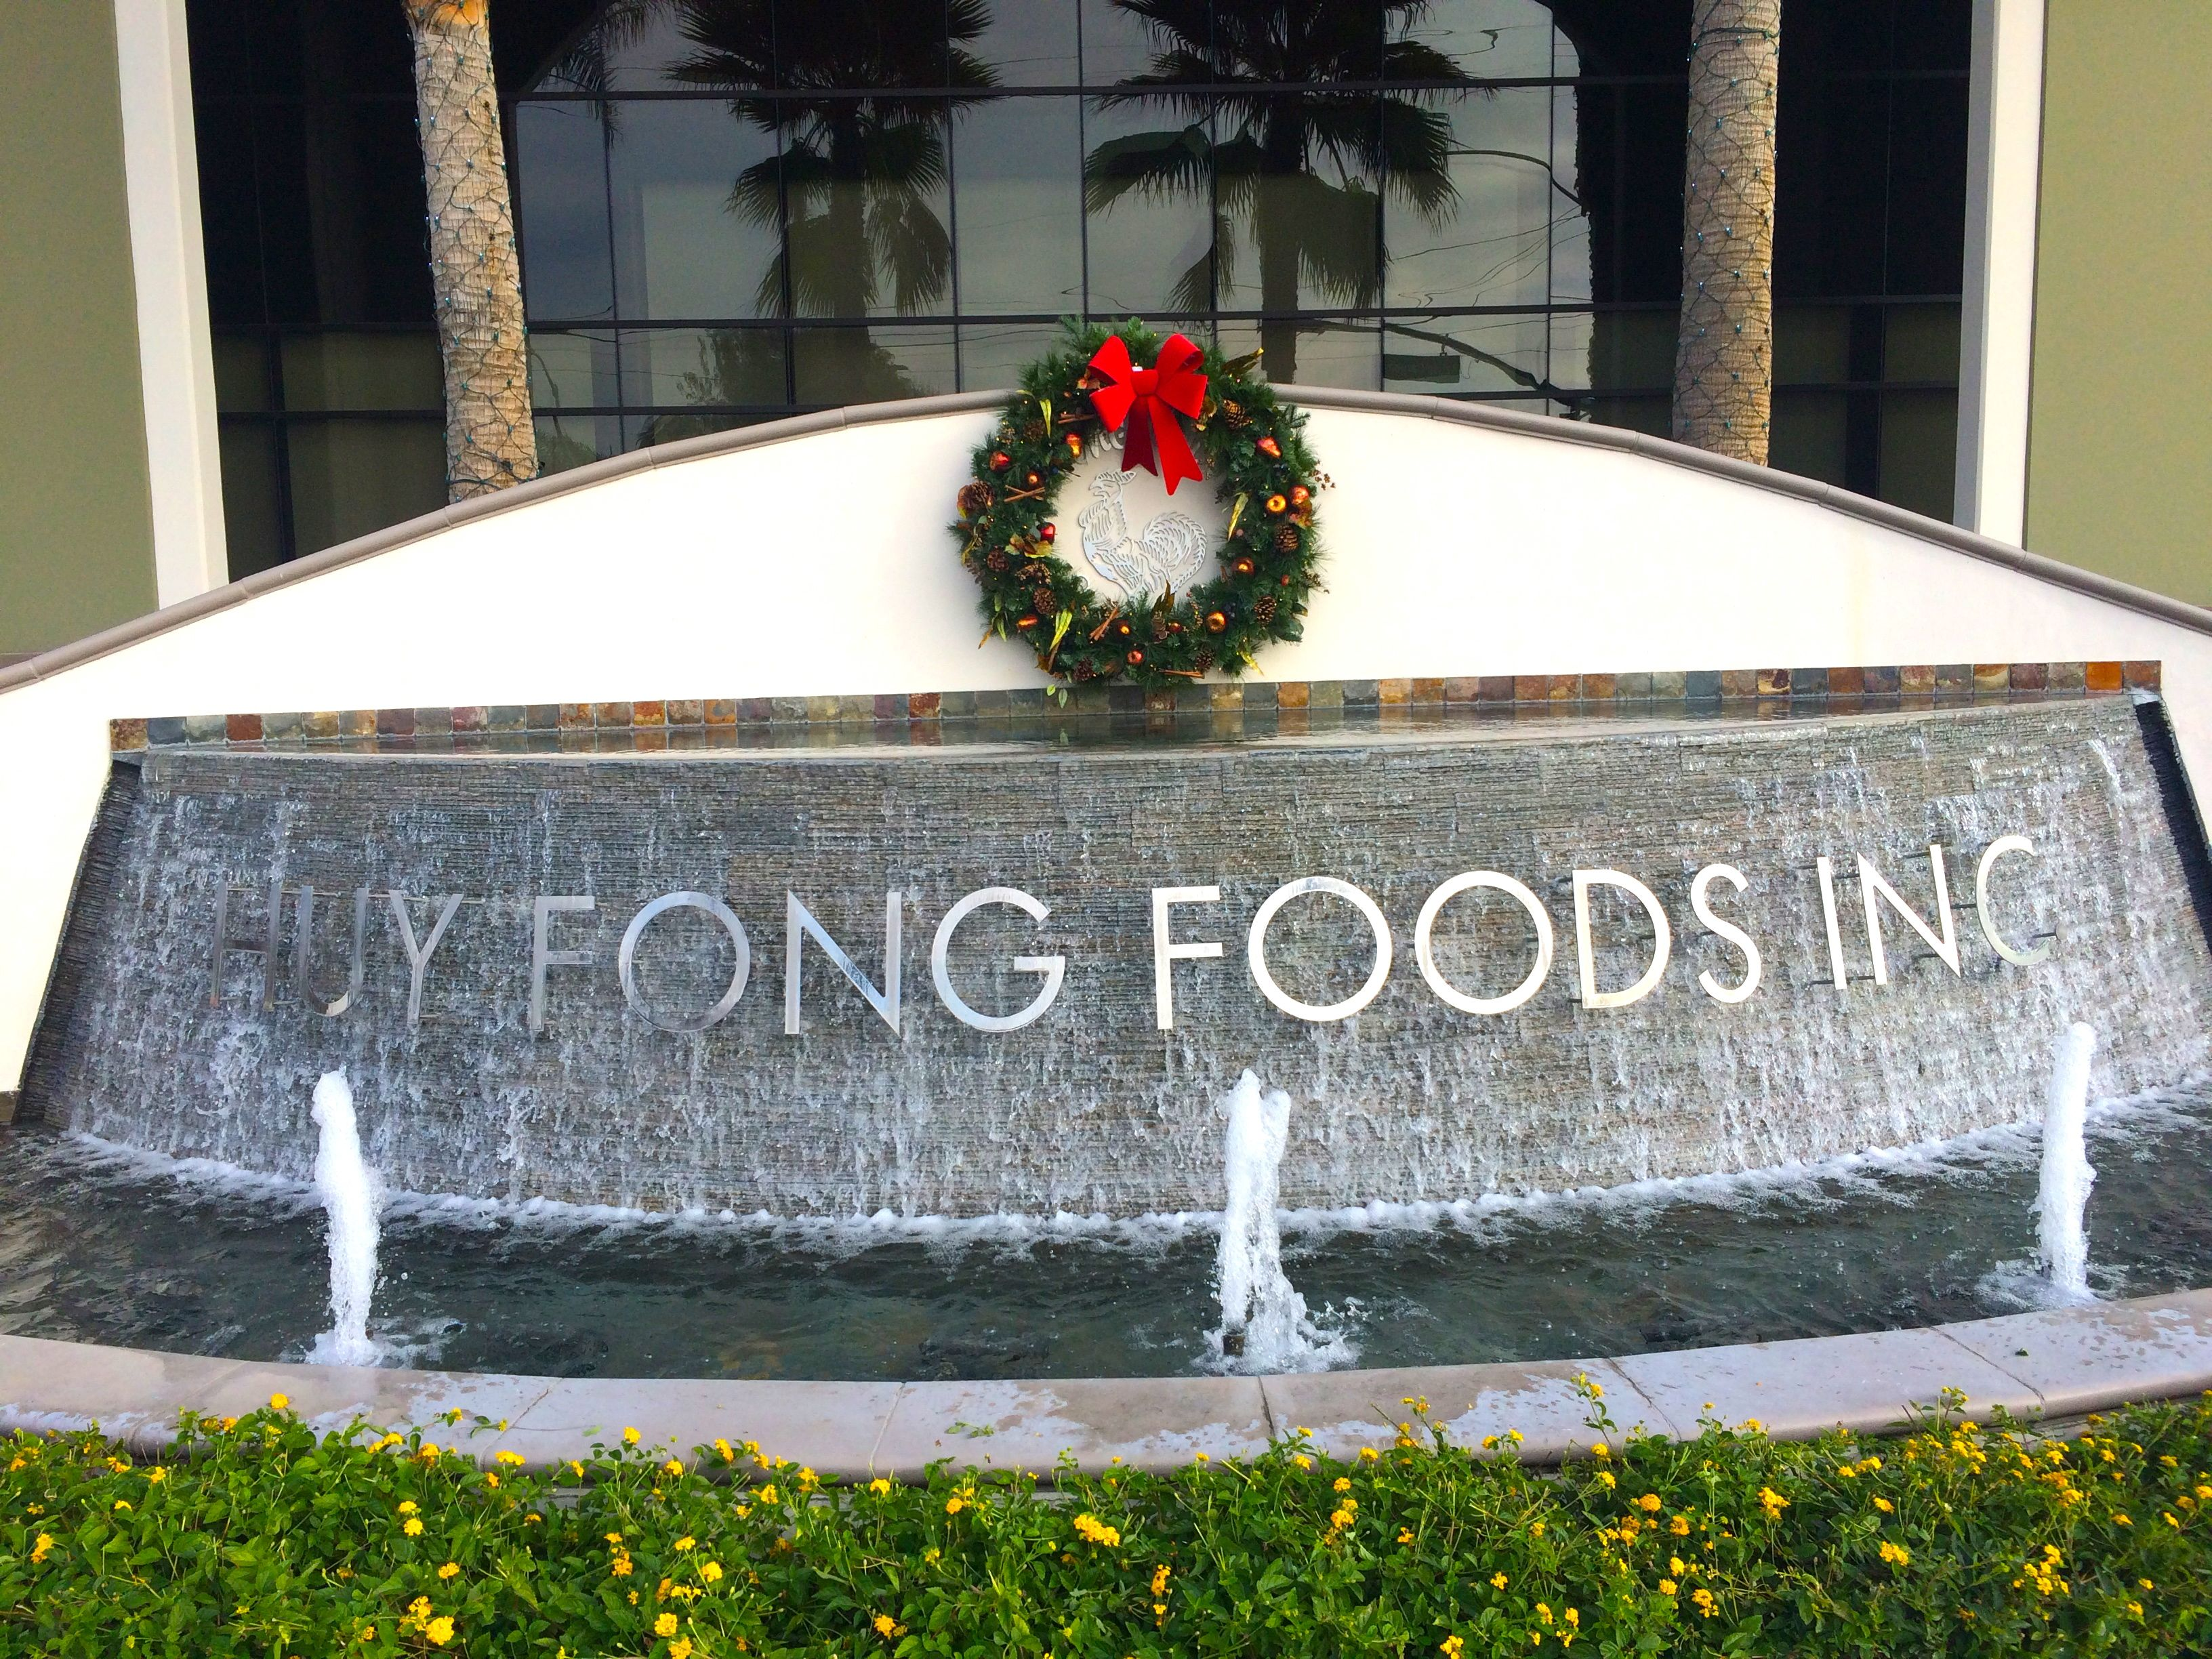 Huy Fong Foods in Irwindale, home of Sriracha (photo by Nikki Kreuzer)